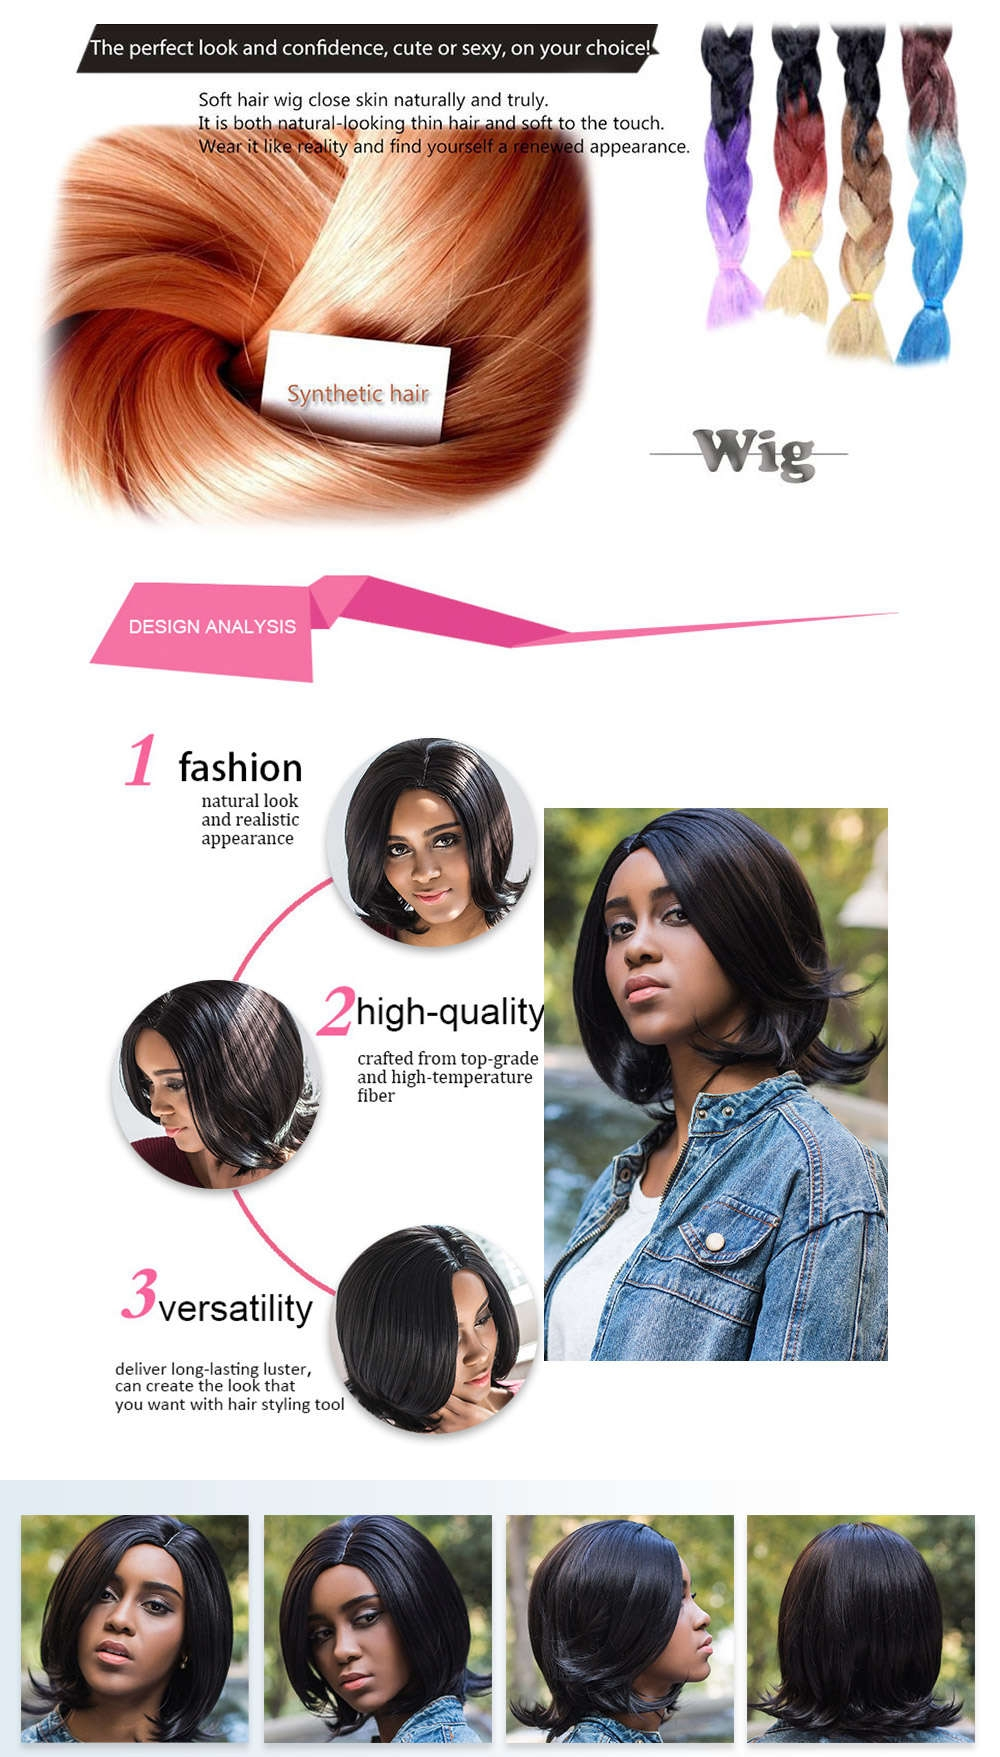 AISIHAIR Charming Straight Medium Synthetic Curly Tail Black Wigs for Women